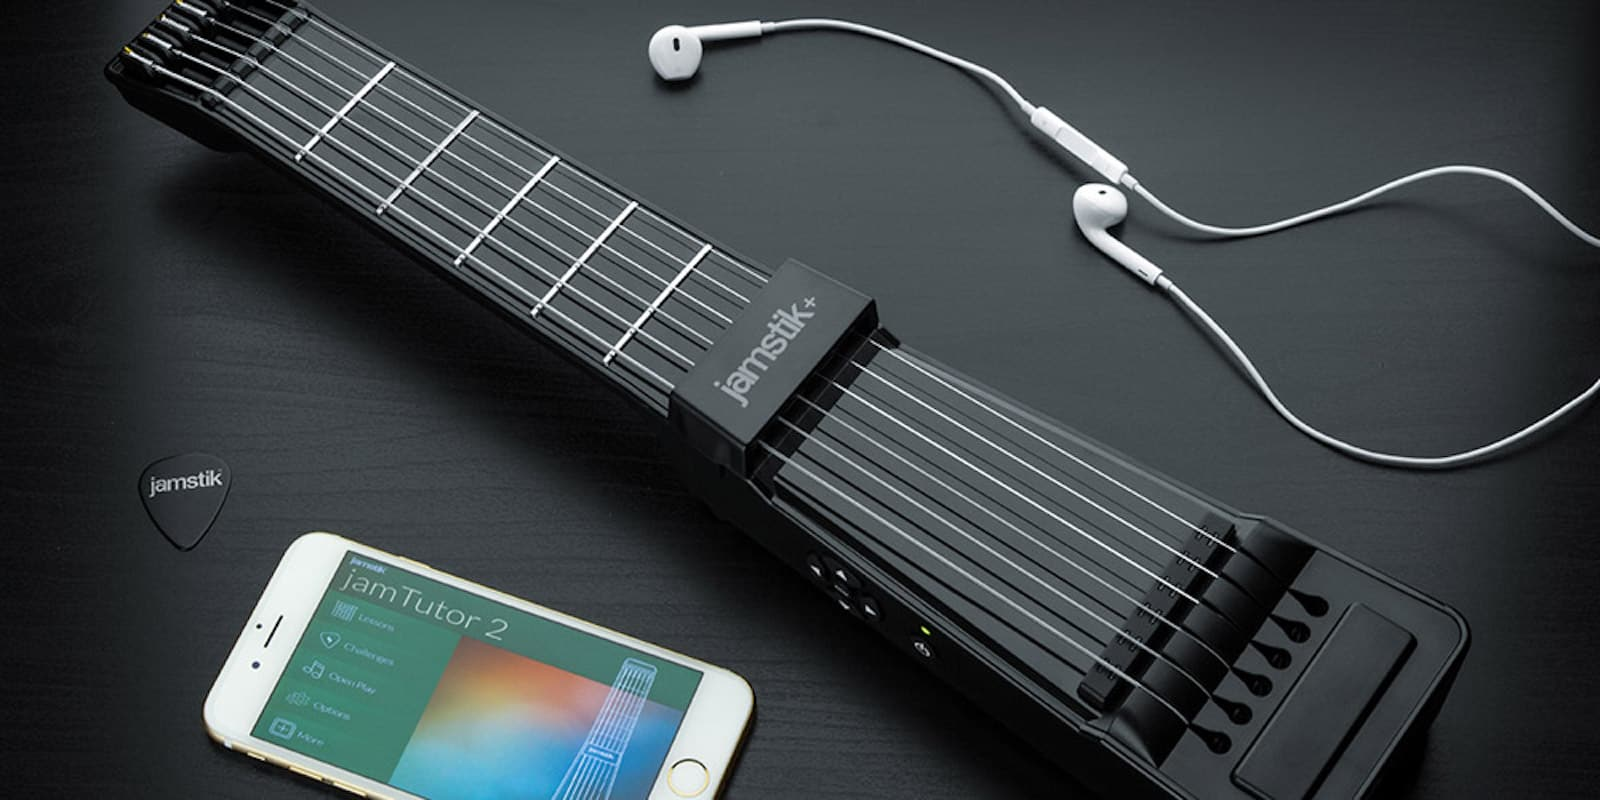 This combination of app and digital axe makes learning guitar extra portable.